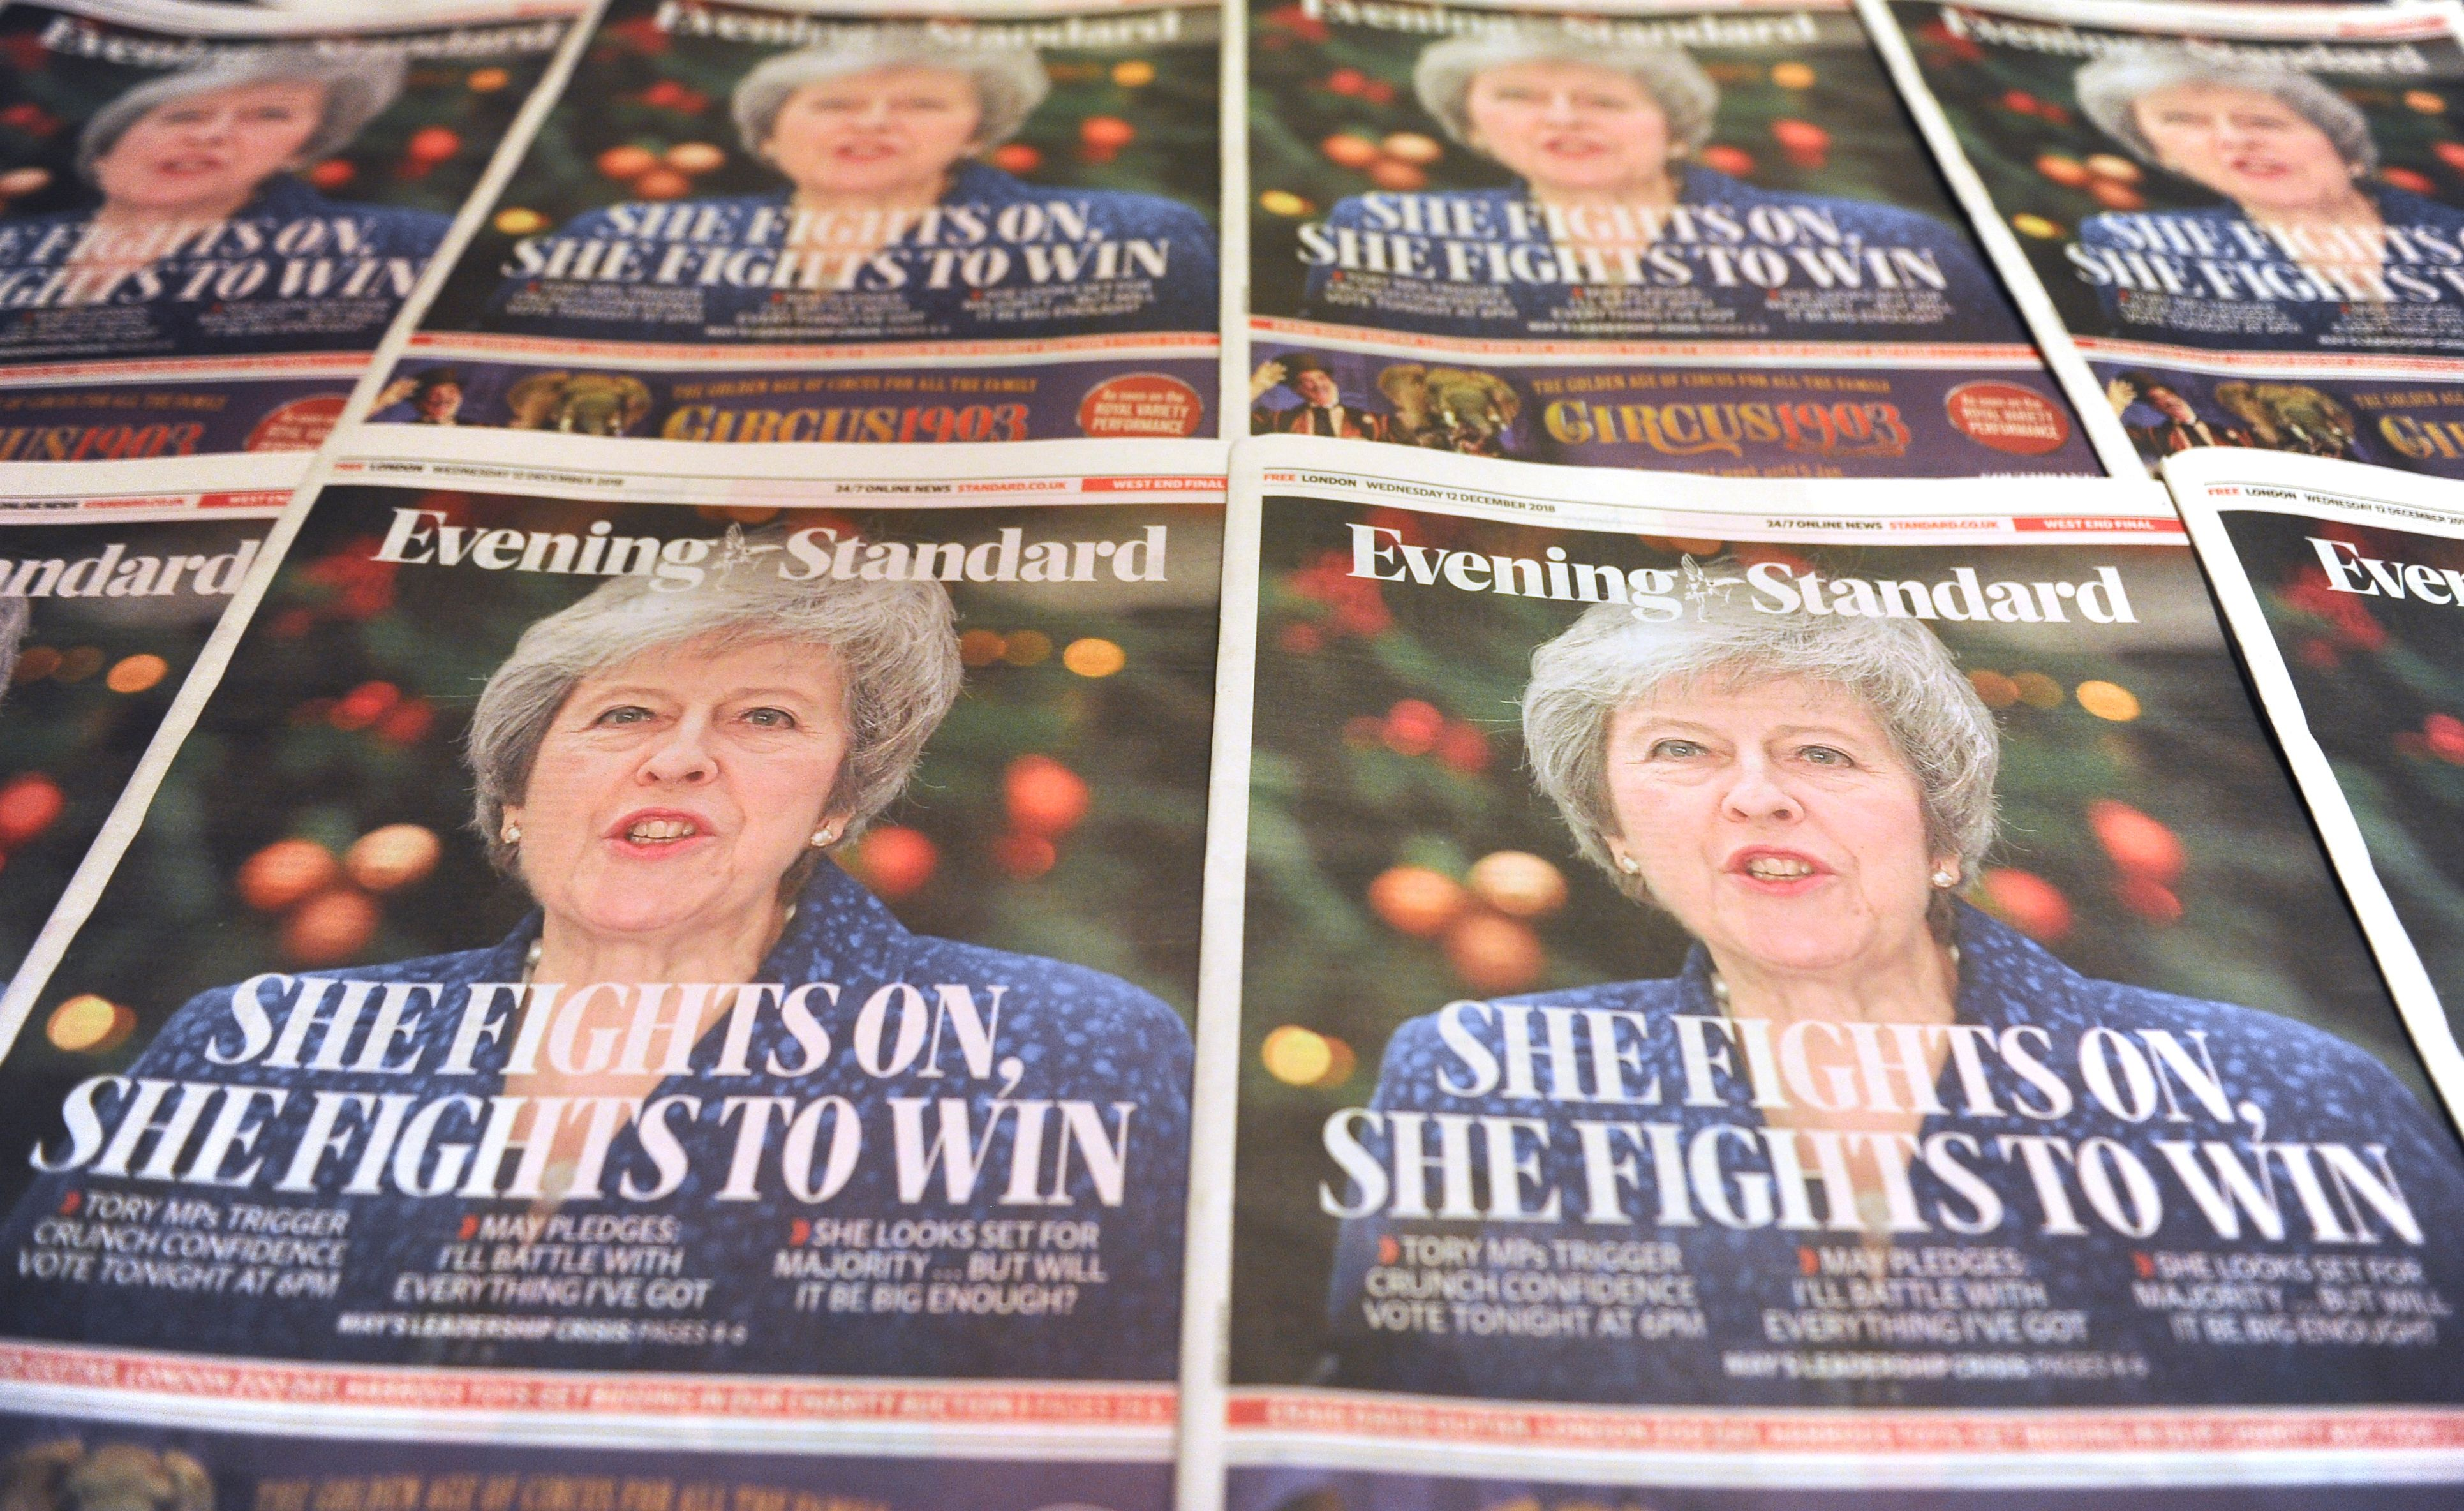 Copies of the Evening Standard, London's daily free newspaper with Britain's Prime Minister Theresa May on the front cover following the confidence vote are arranged in London on December 12, 2018. (DANIEL SORABJI/AFP/Getty Images)